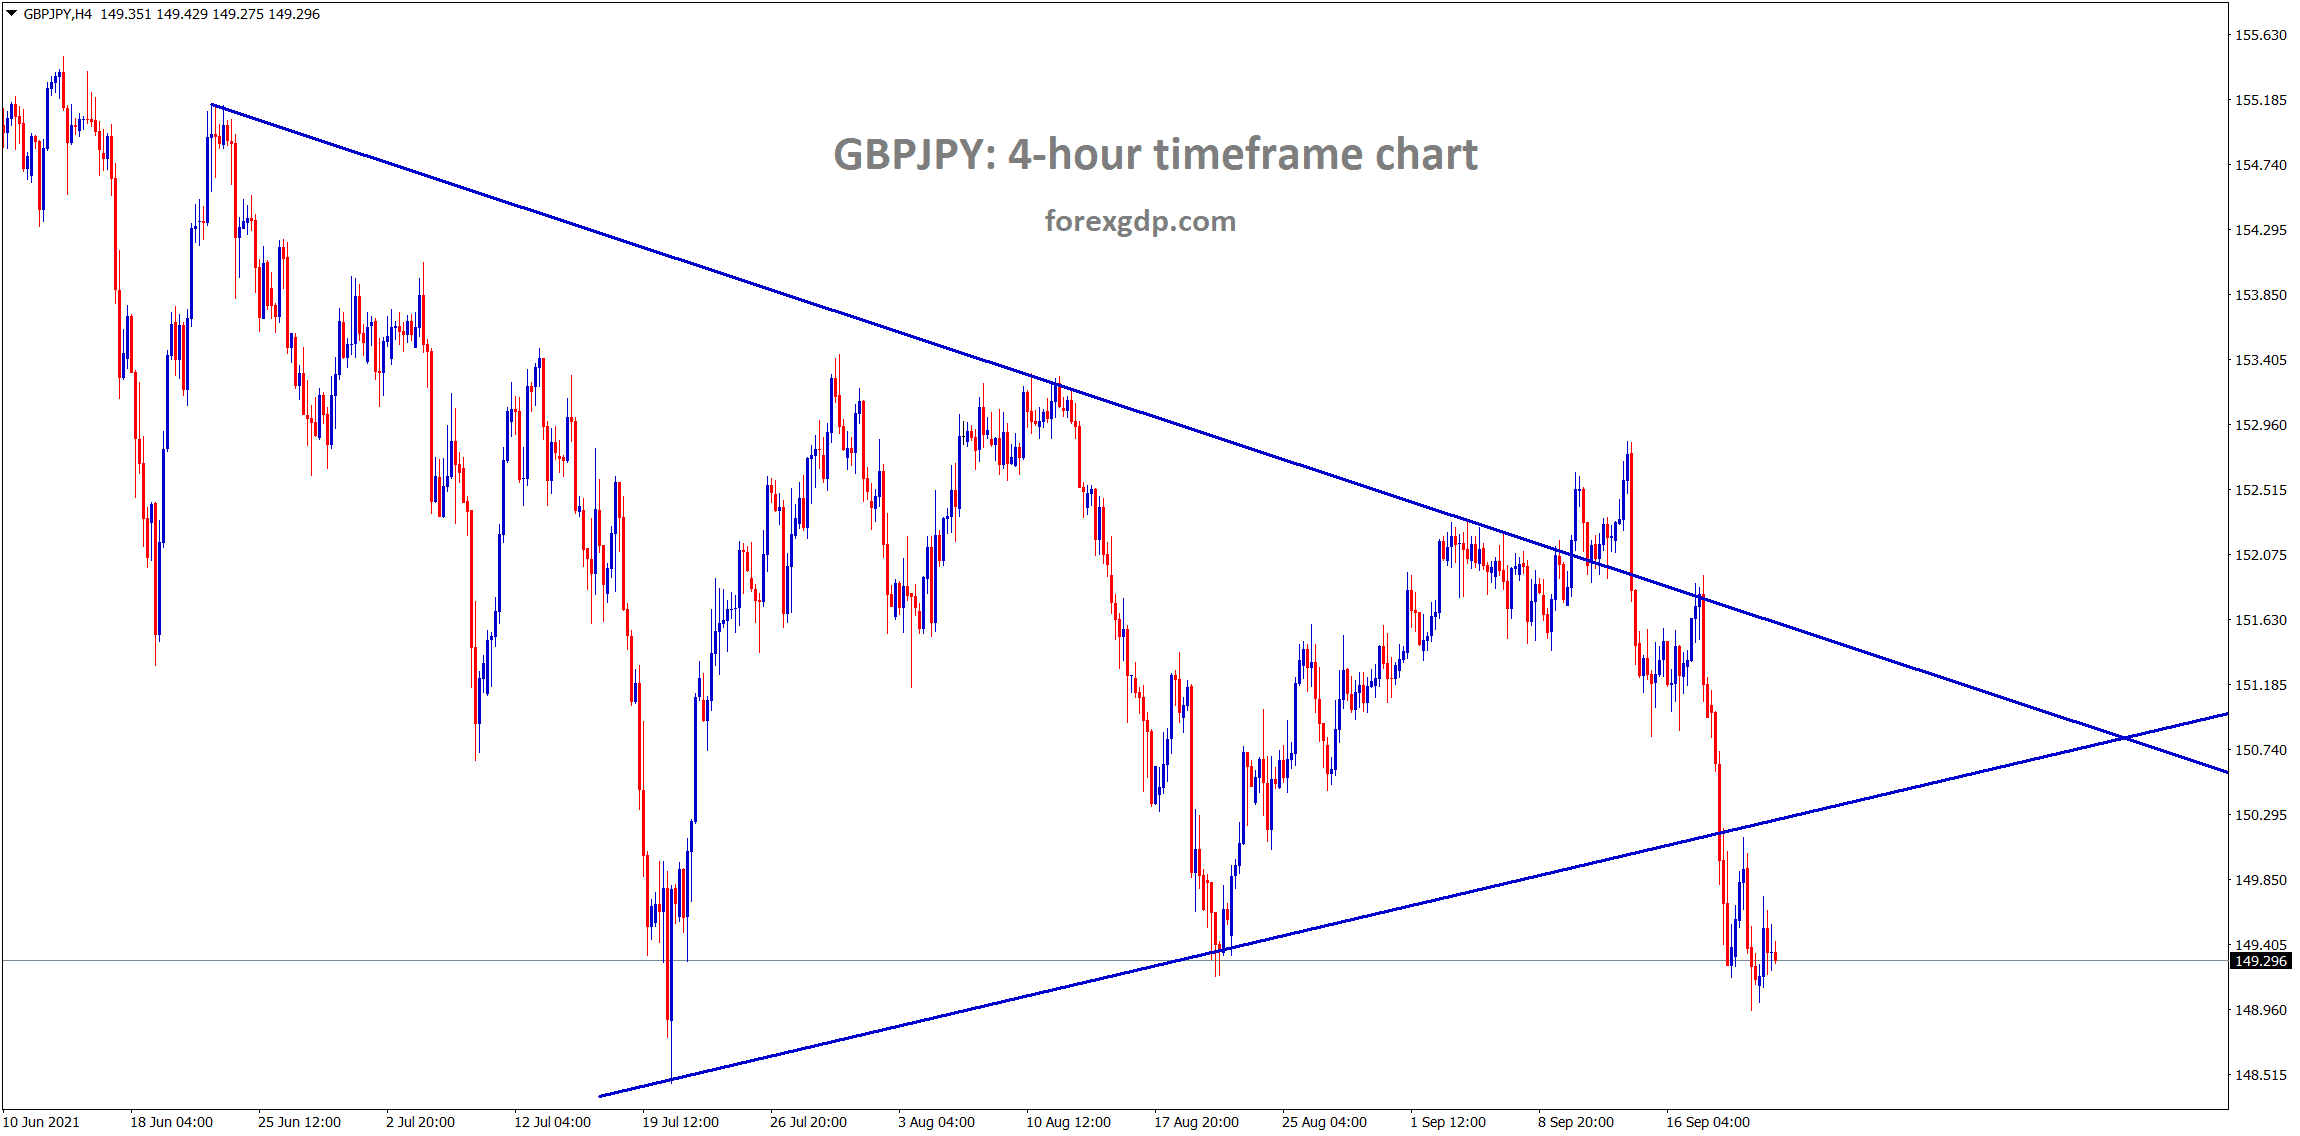 GBPJPY is at the horizontal support area breaking the symmetrical triangle pattern